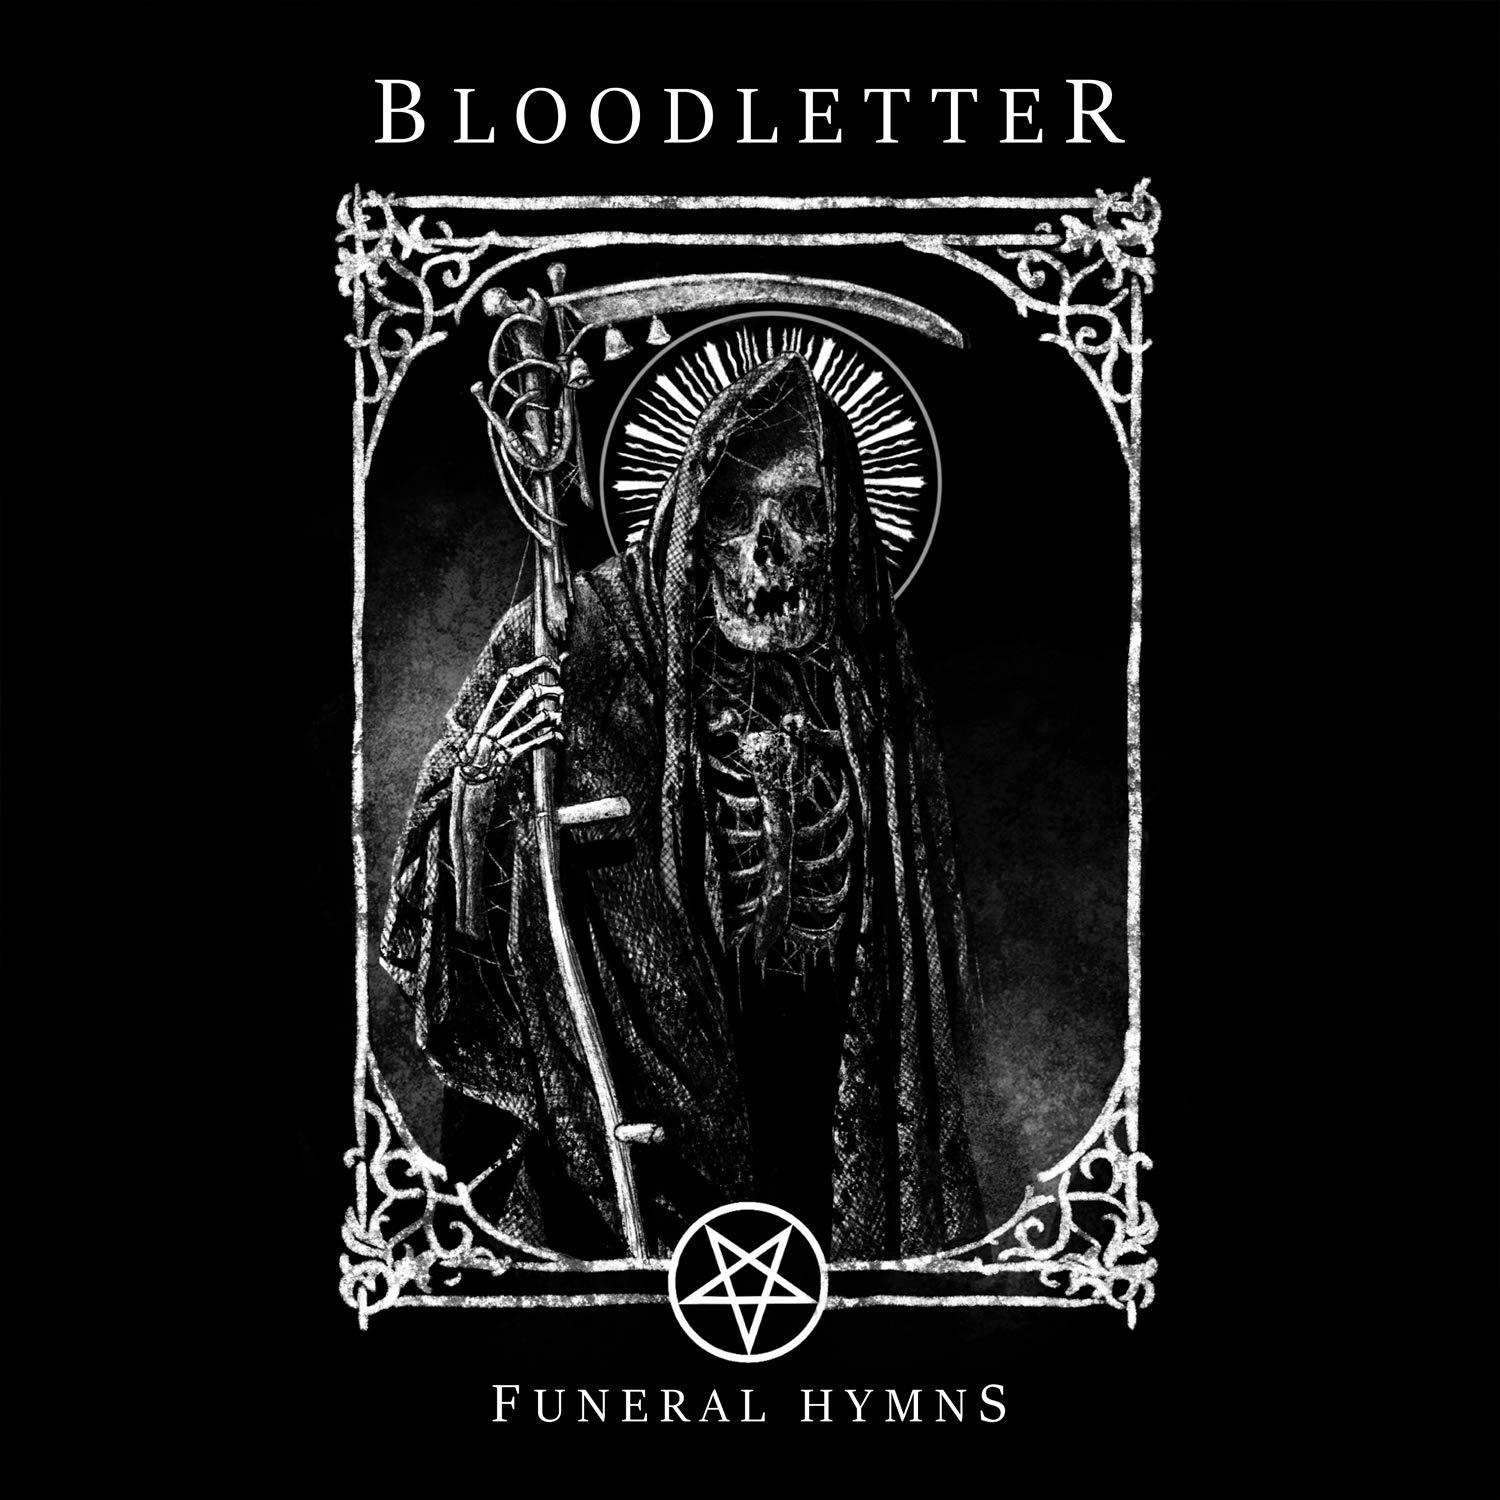 Bloodletter – Funeral Hymns (2021) [FLAC]